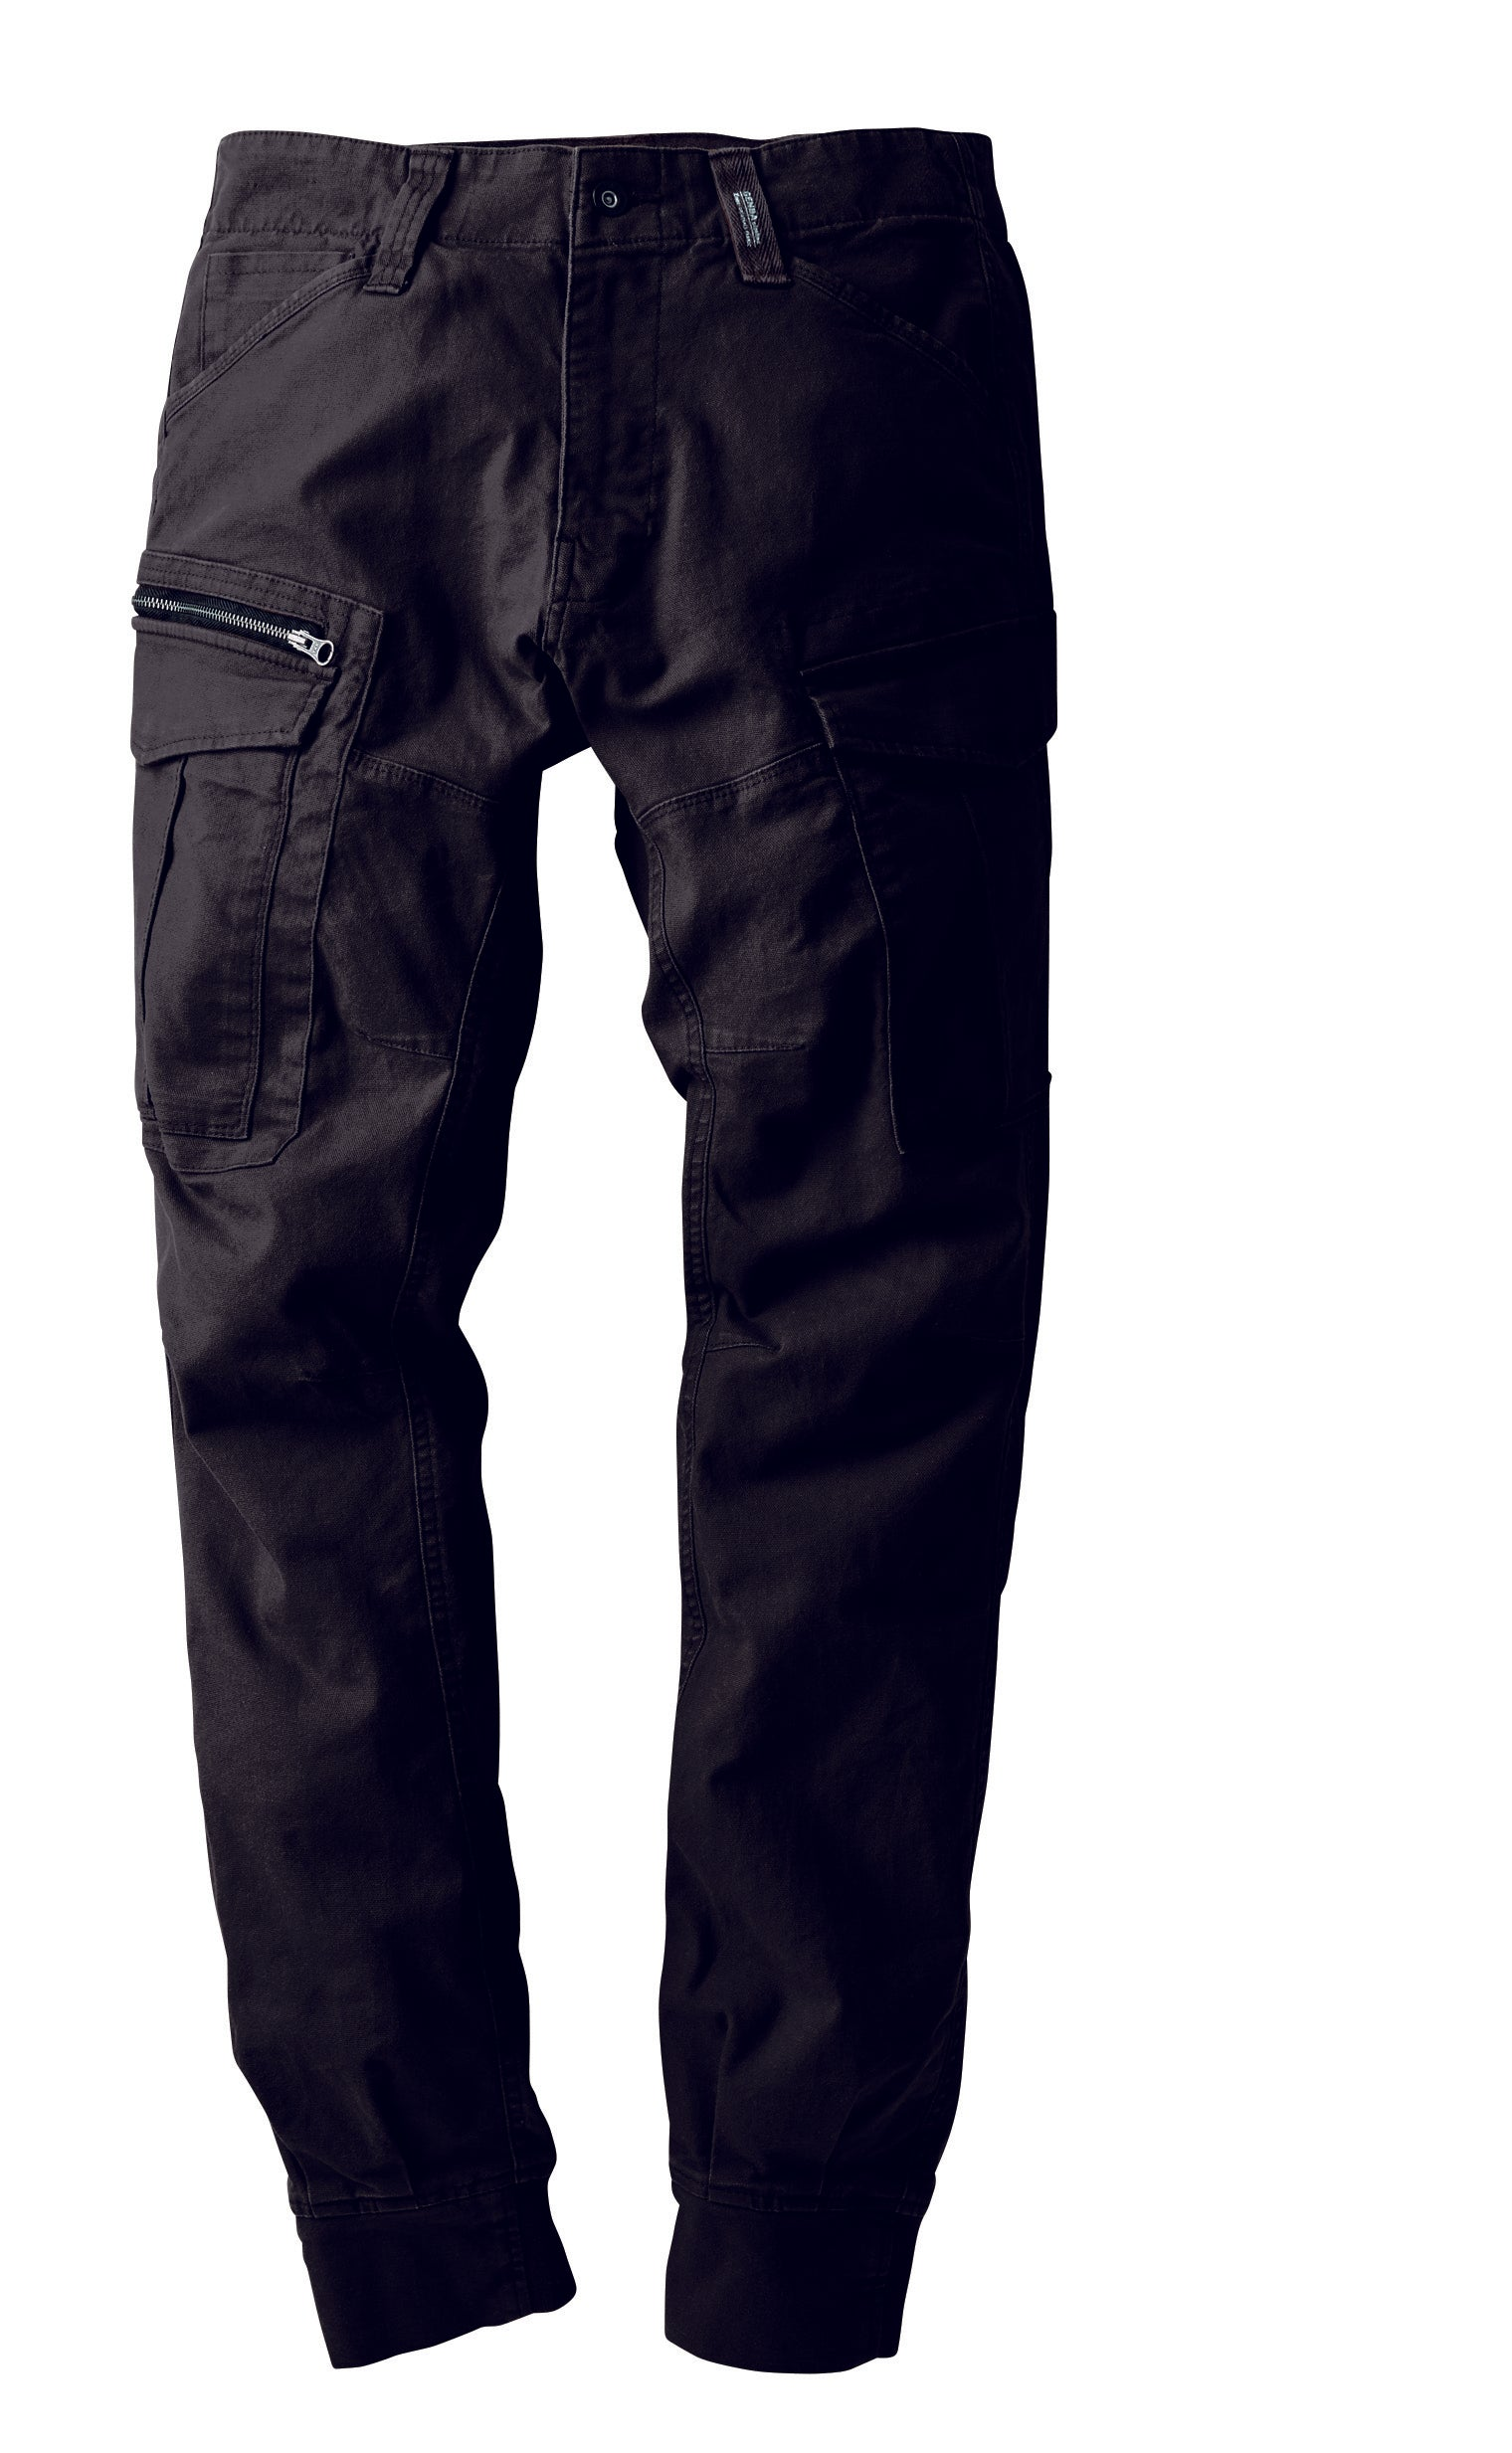 XEBEC 2176 GENBA Stretch With ribs Cargo pants